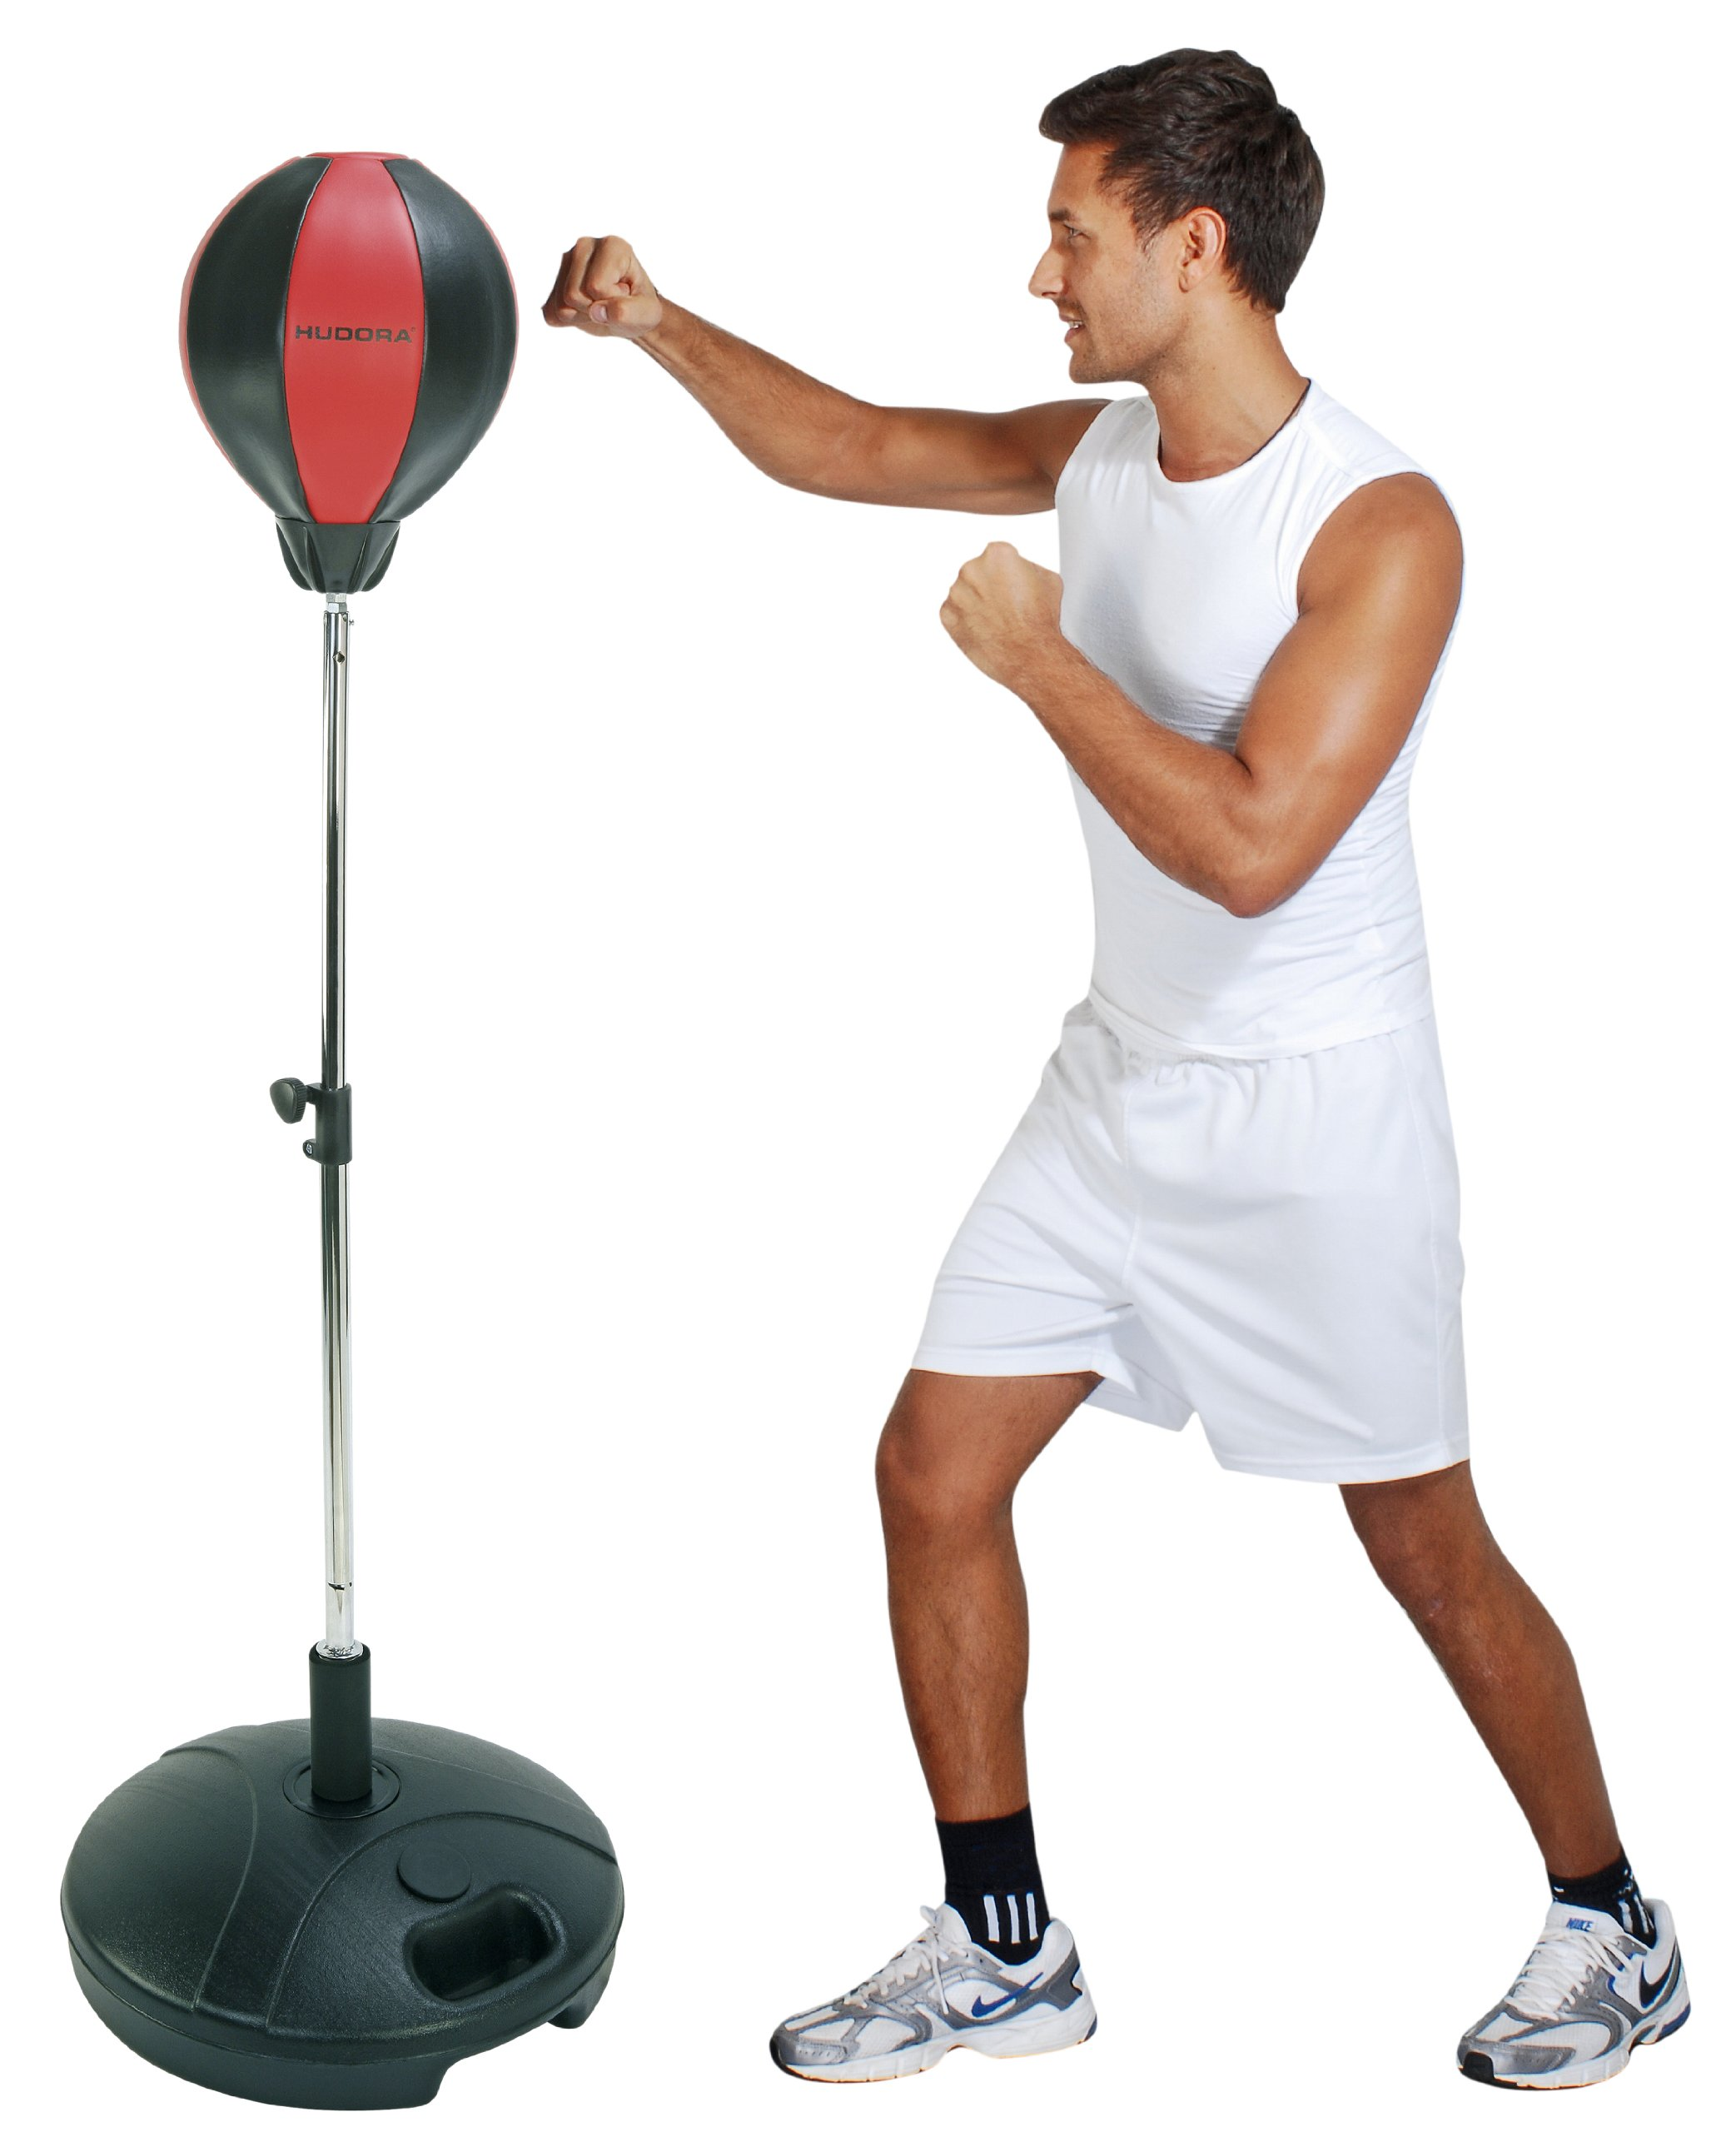 HUDORA Punching Ball With Boxing Gloves And Pump by by HUDORA (Image #2)